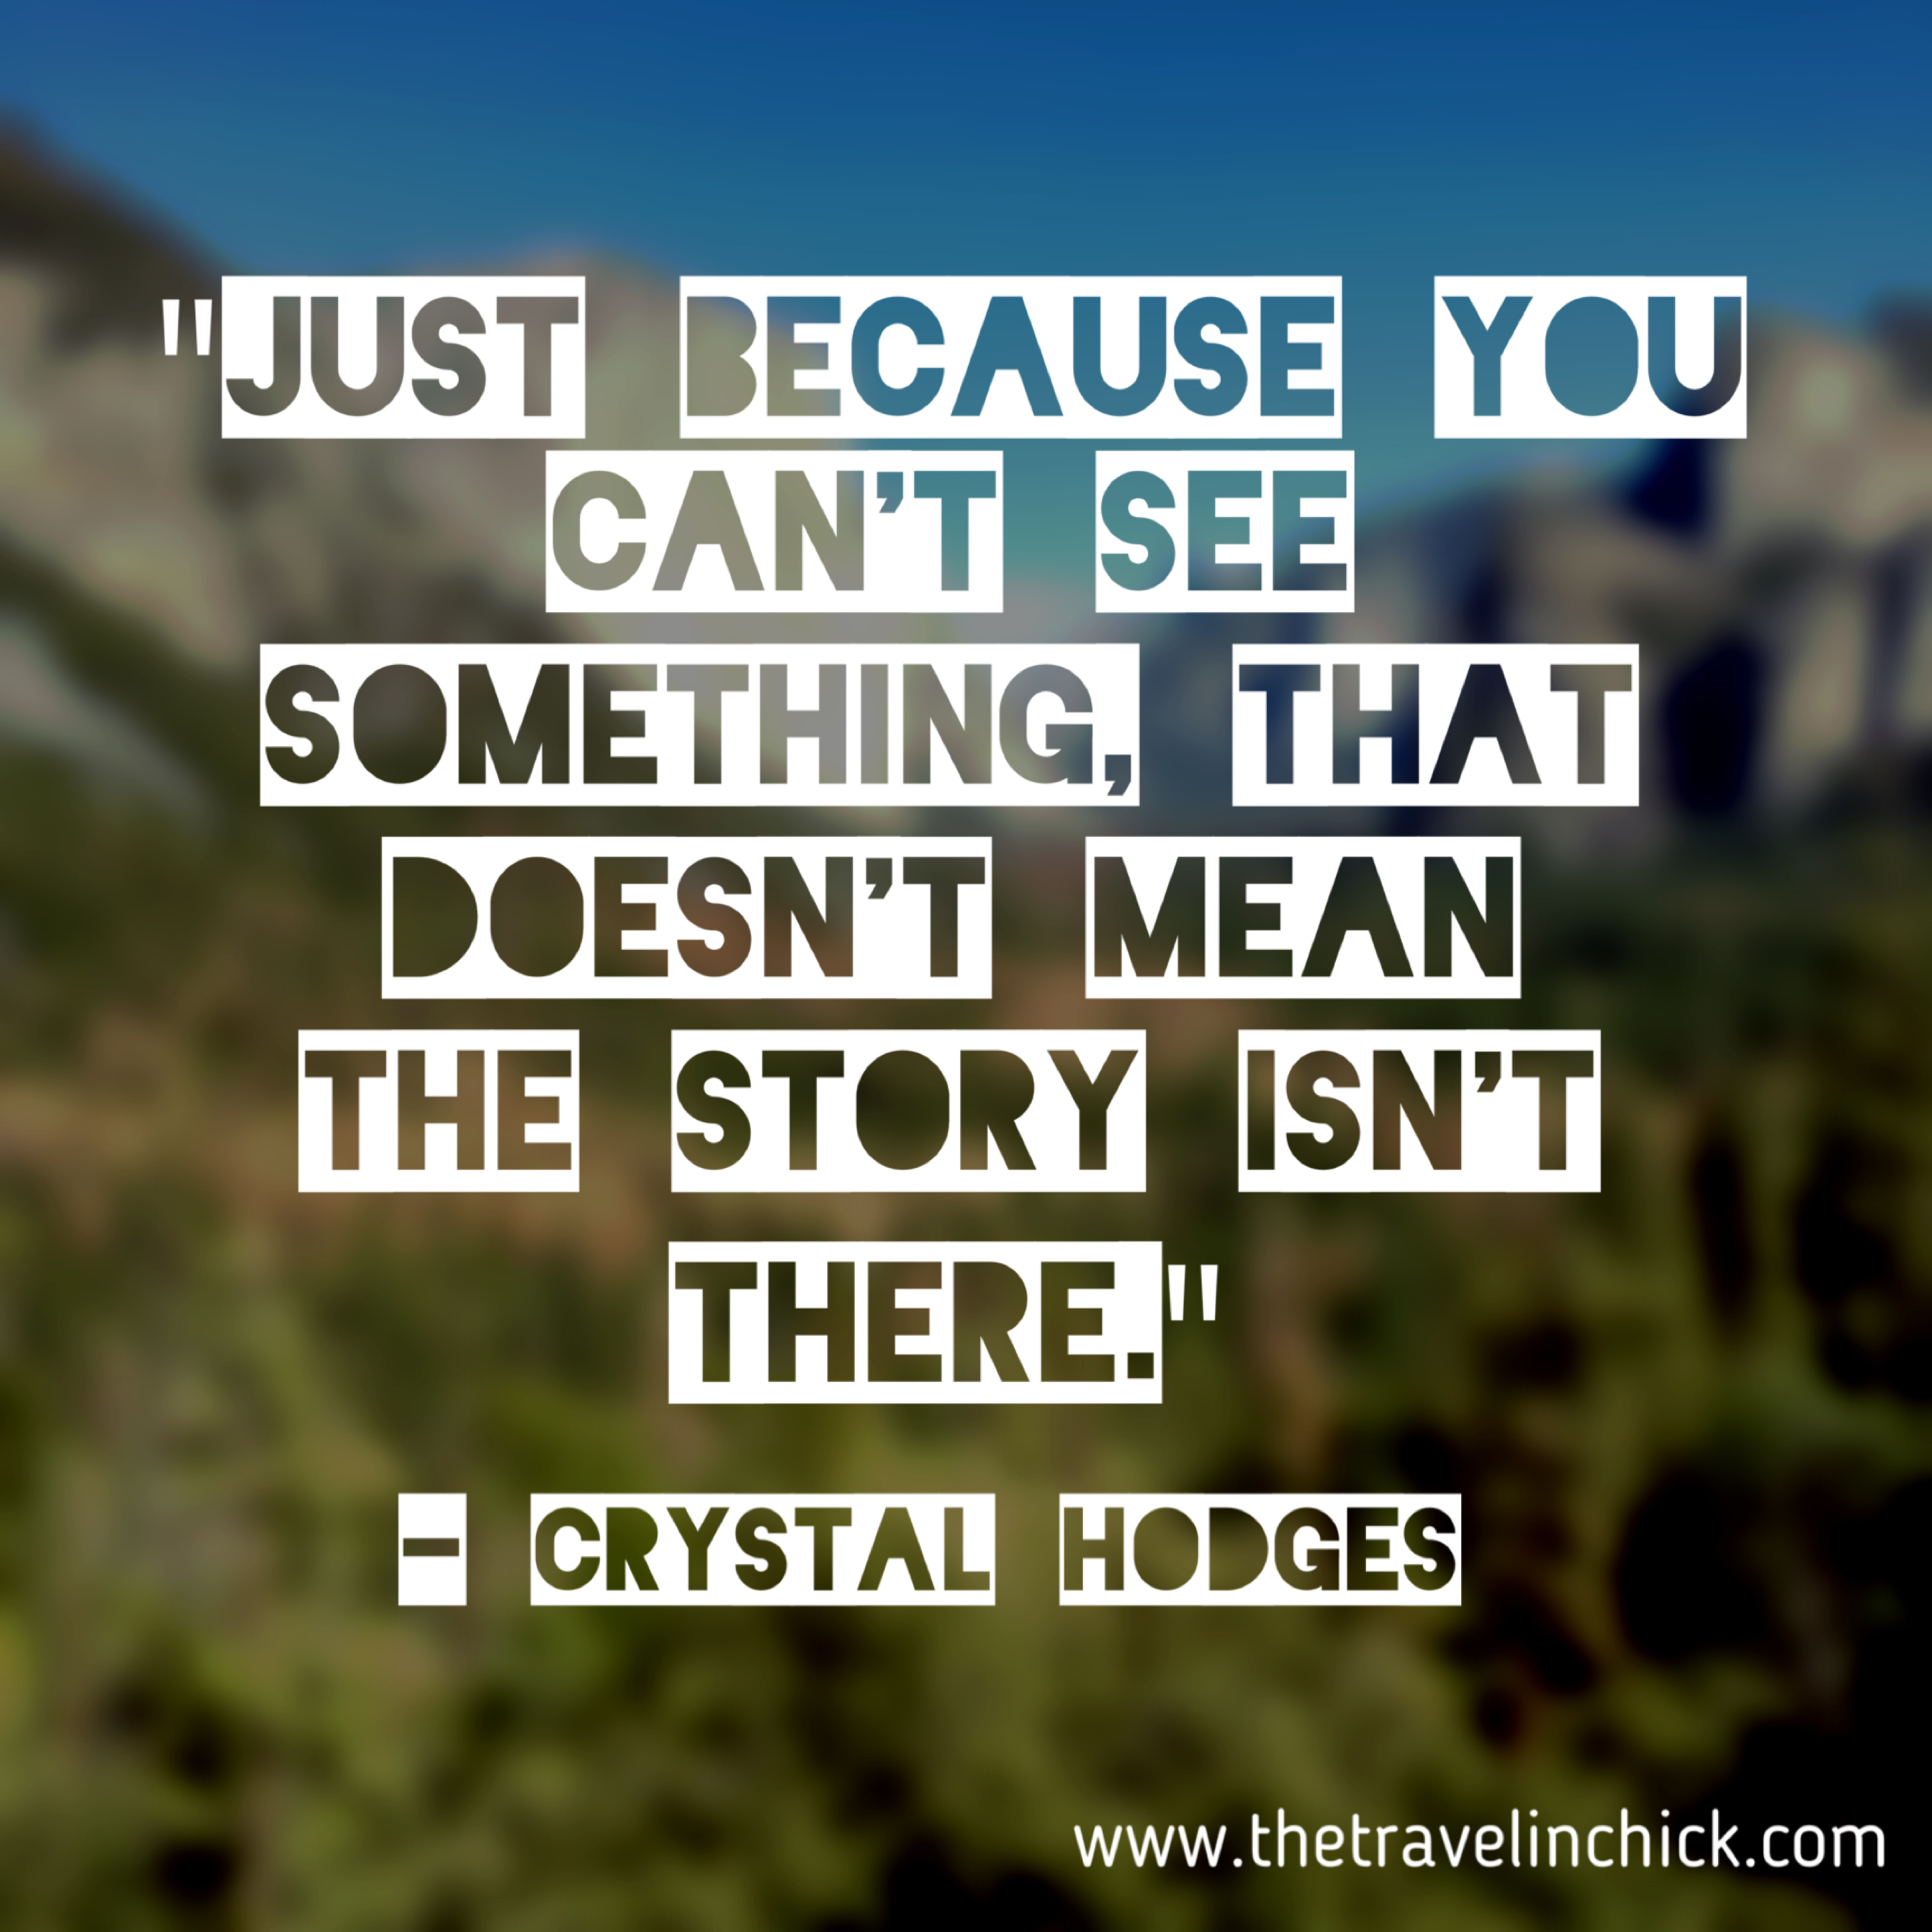 Meme that says [just because you can't see something, that doesn't mean the story isn't there. crystal hodges]